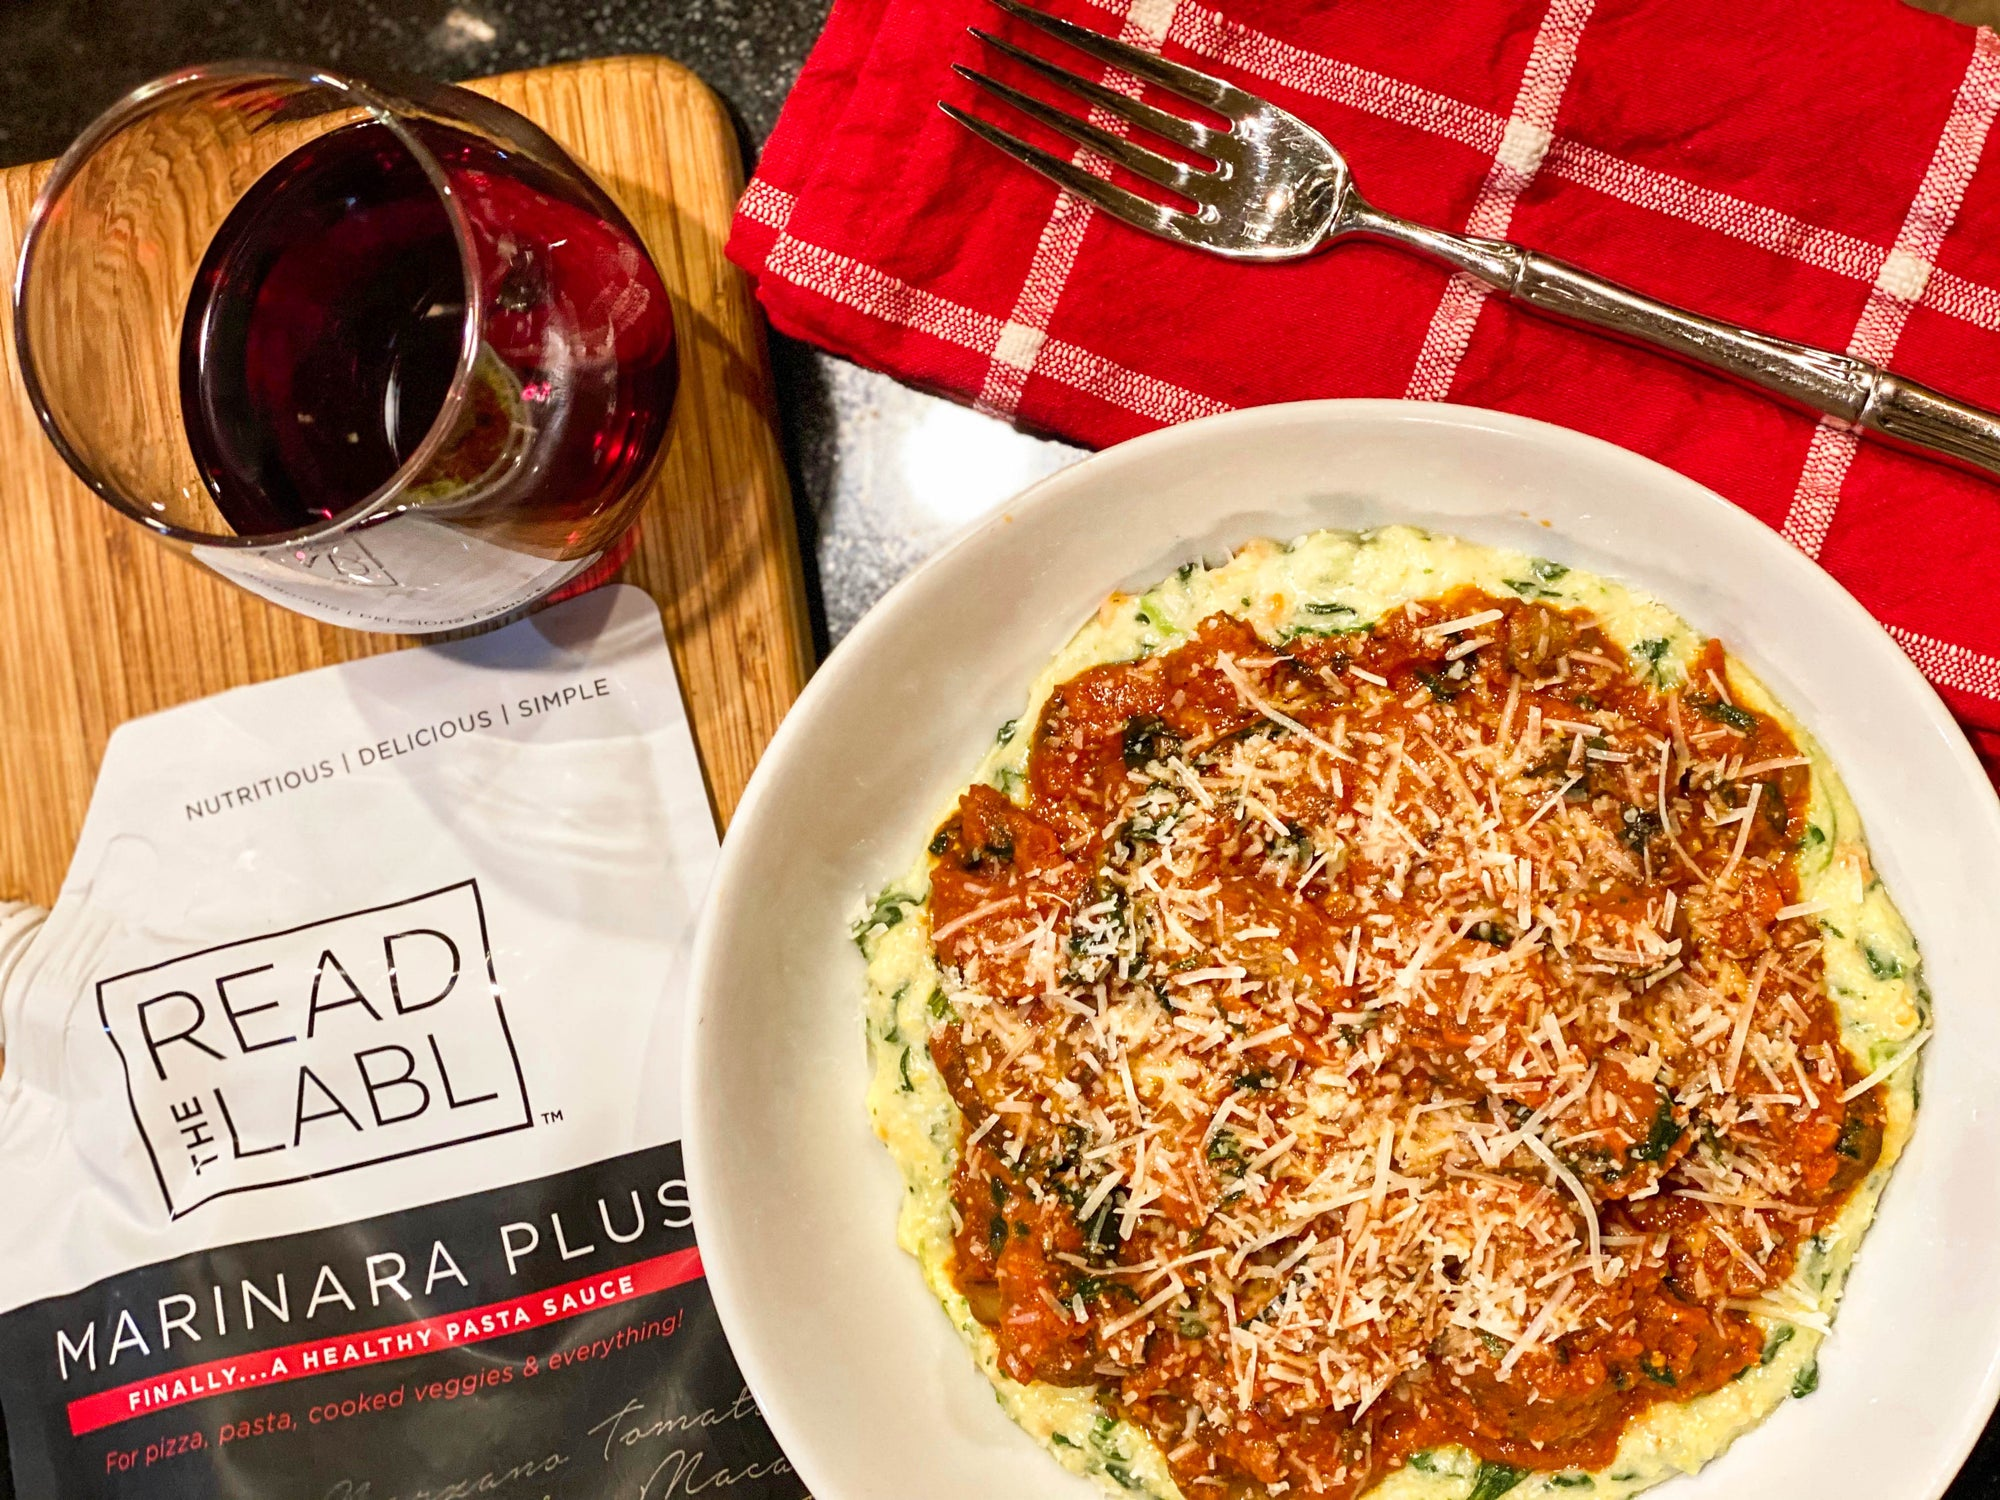 RECIPE: Marinara Plus Italian Meatballs with Spinach & Polenta